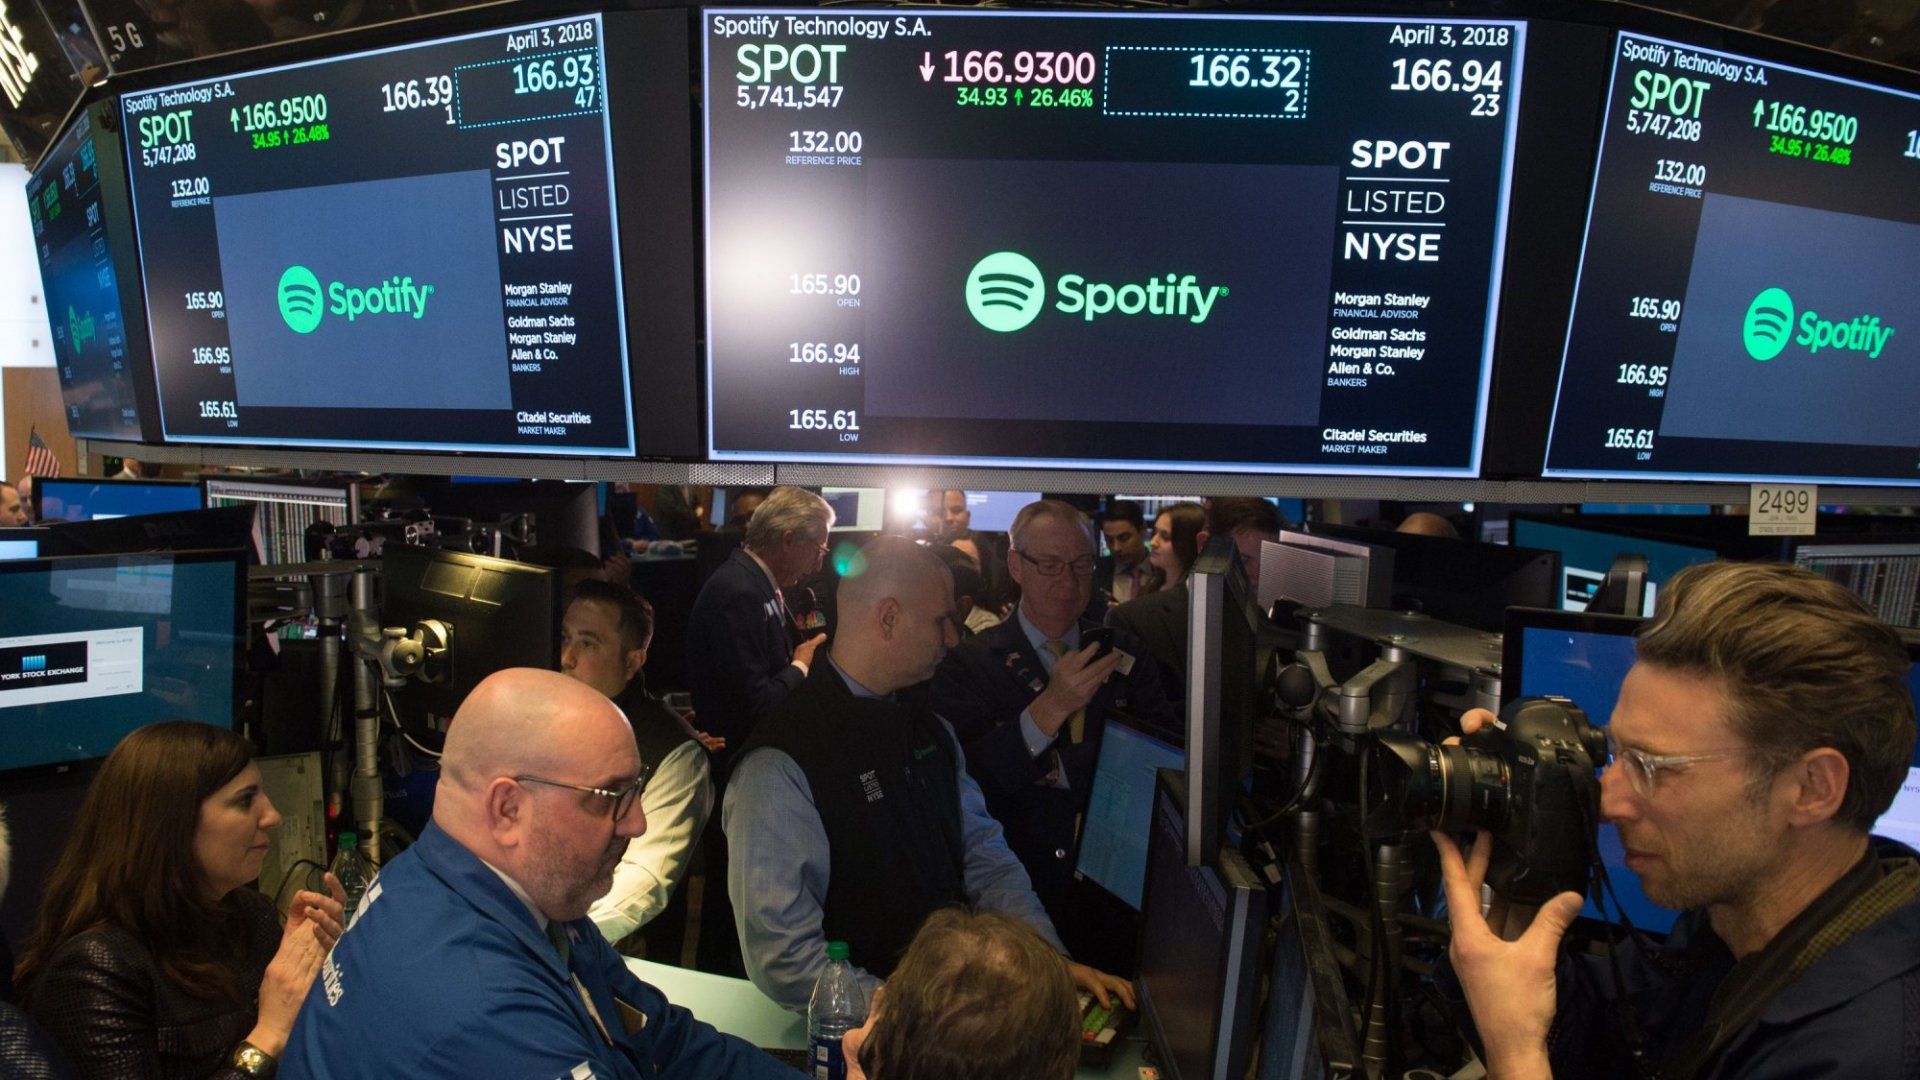 What Spotify's IPO Means for Tech Startups in 2018